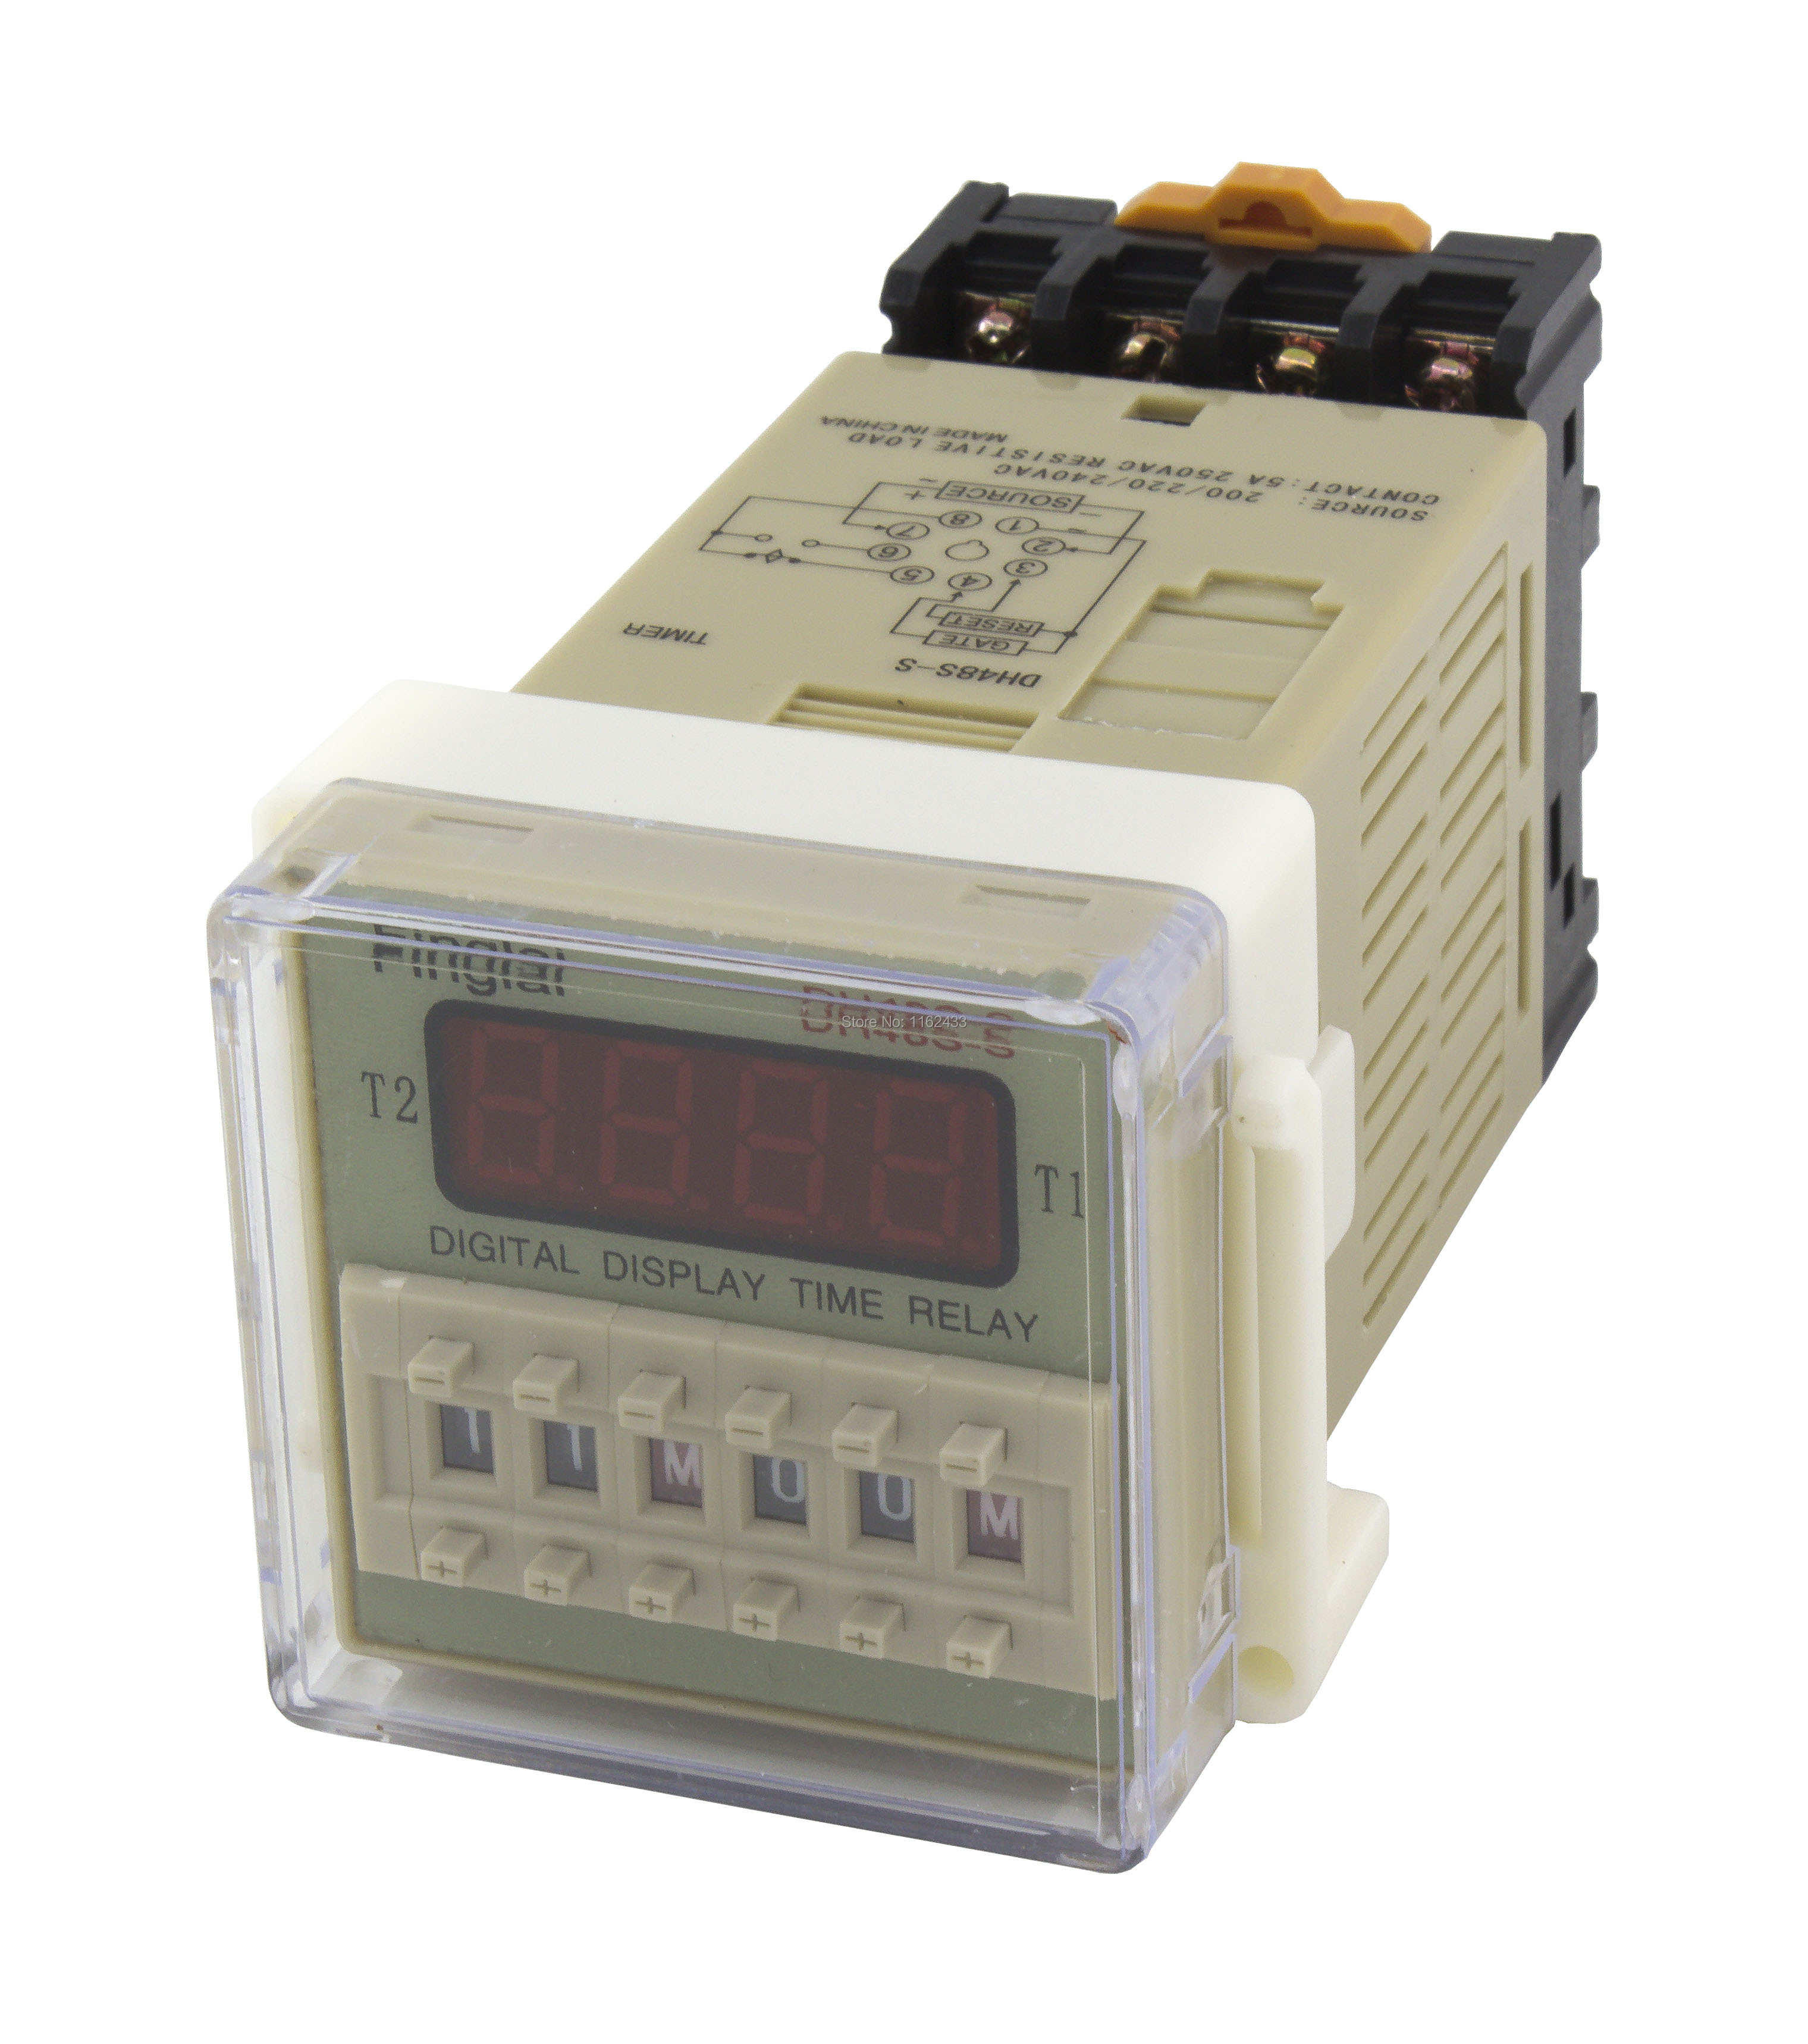 Free Shipping Dh48s S Repeat Cycle Spdt Time Relay With Socket Solid State 5v Series Delay Timer Base Ac 220v 110v Dc 24v 12v In Relays From Home Improvement